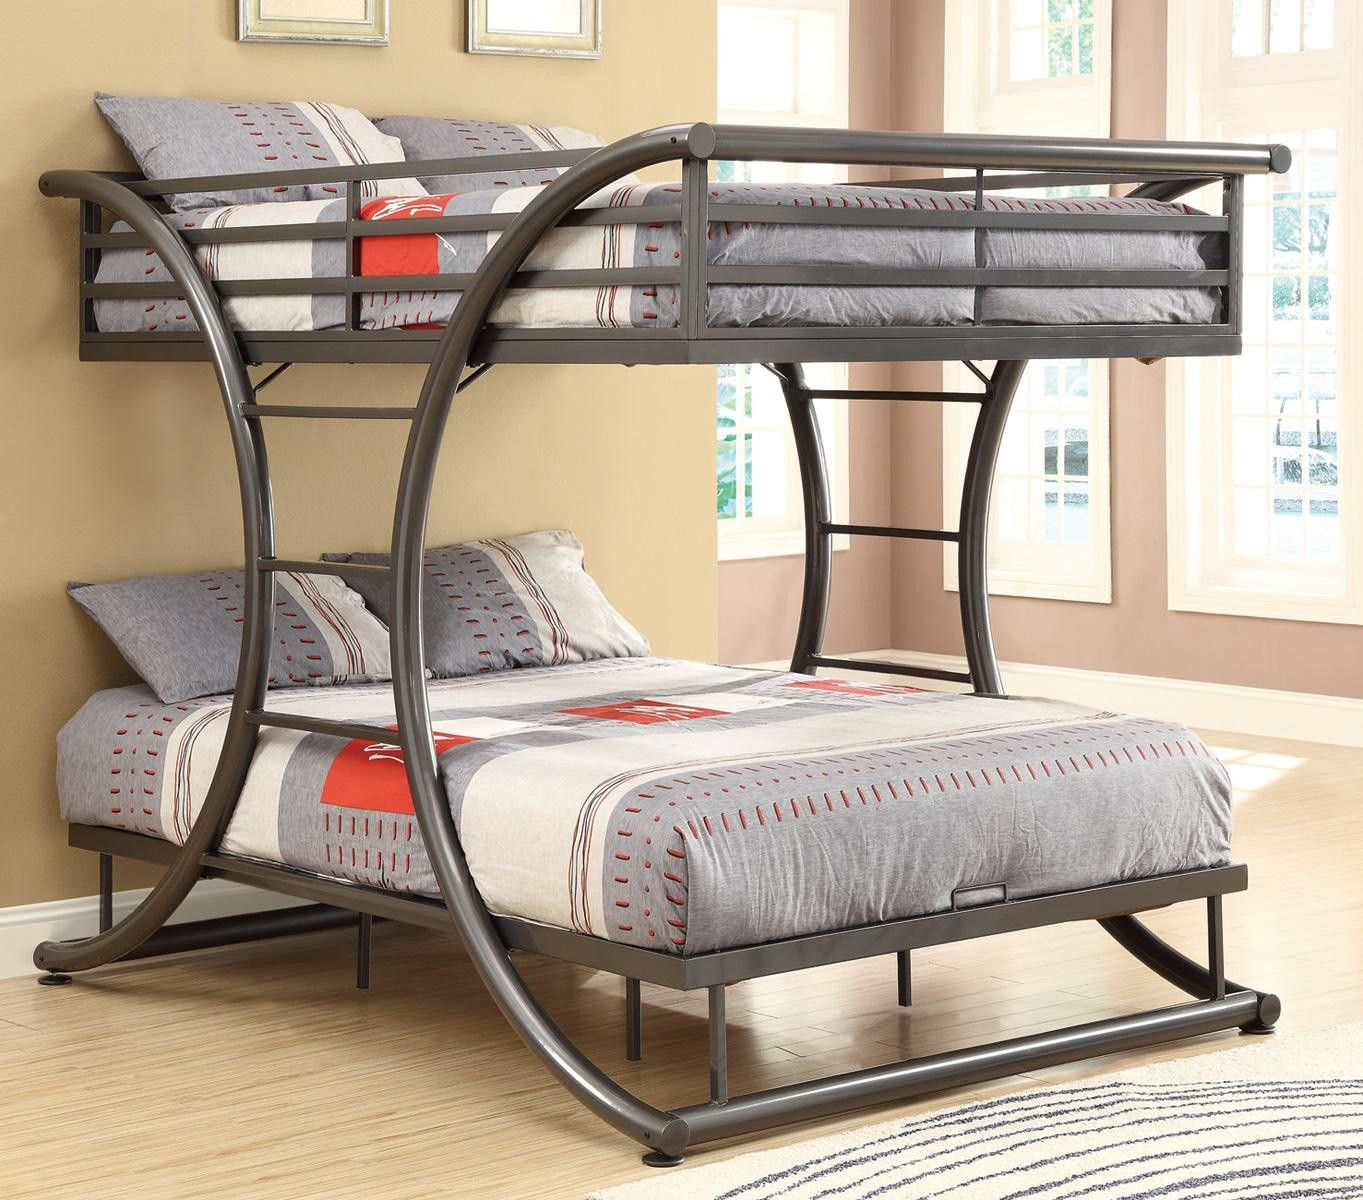 Metal Futon Bunk Bed - Metal Futon Bunk Bed Beds Twin Over Double Pinterest Full